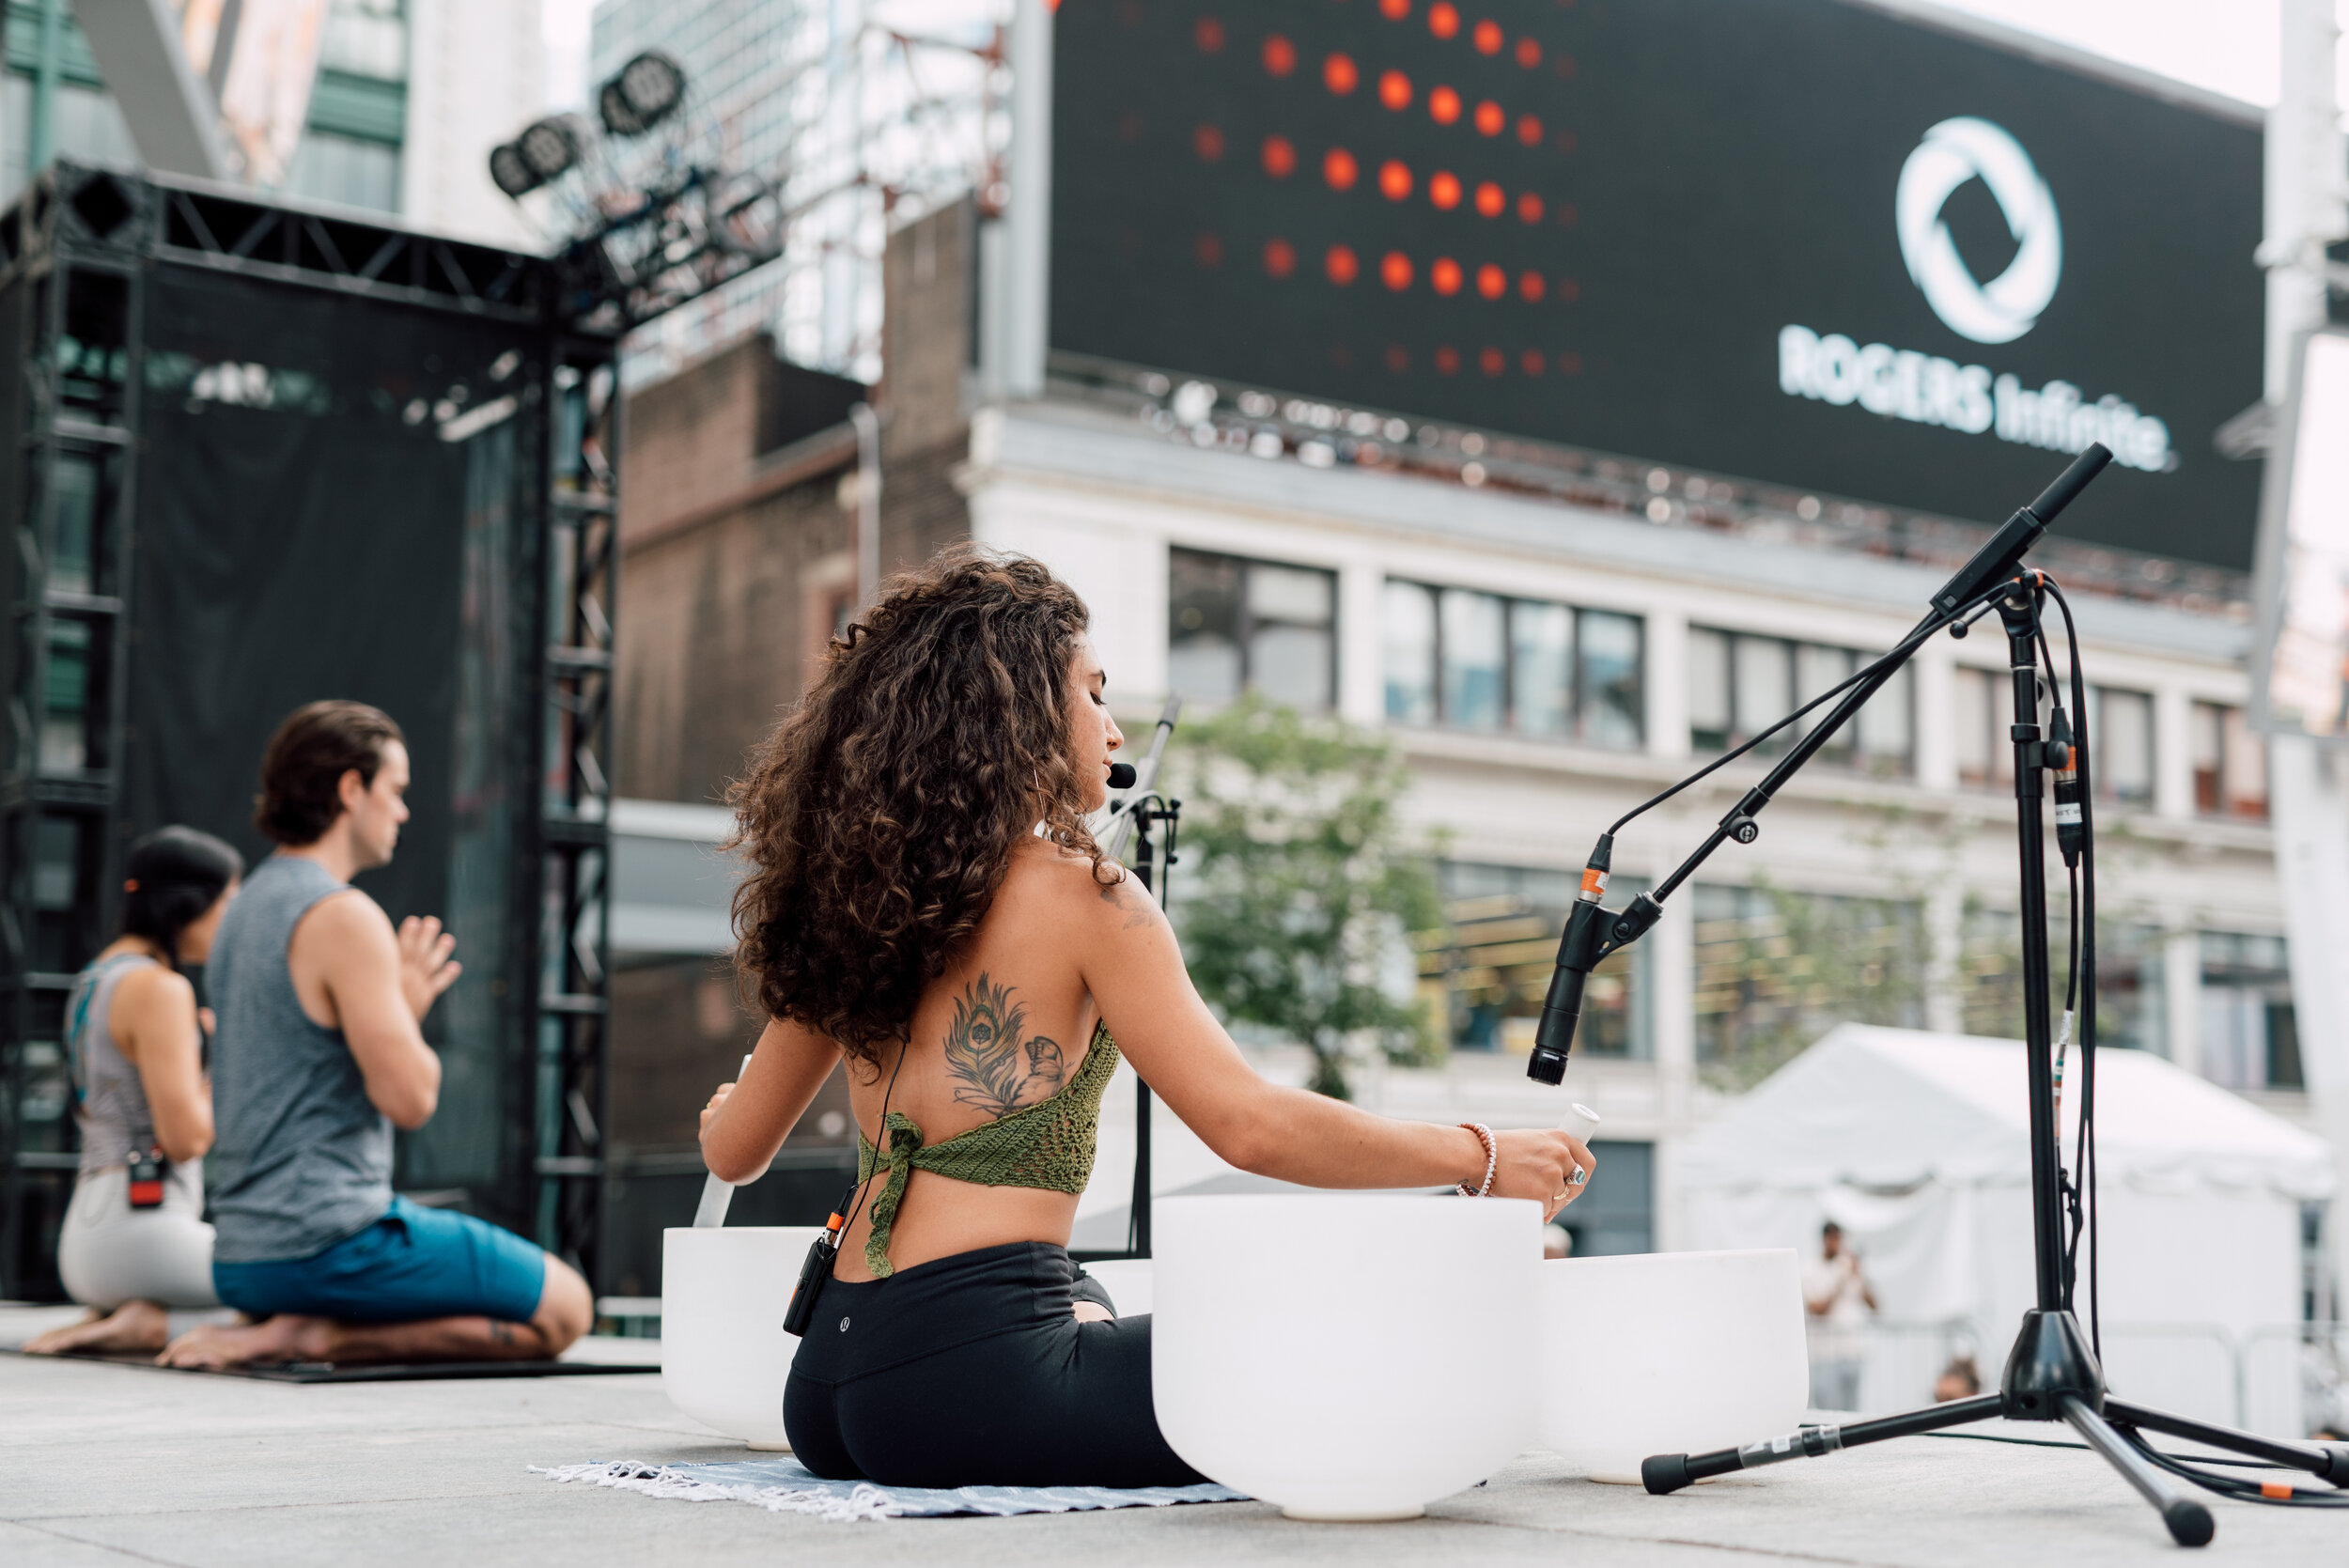 Theonlyalexandria performing Sound bath and Yoga at Dundas Square